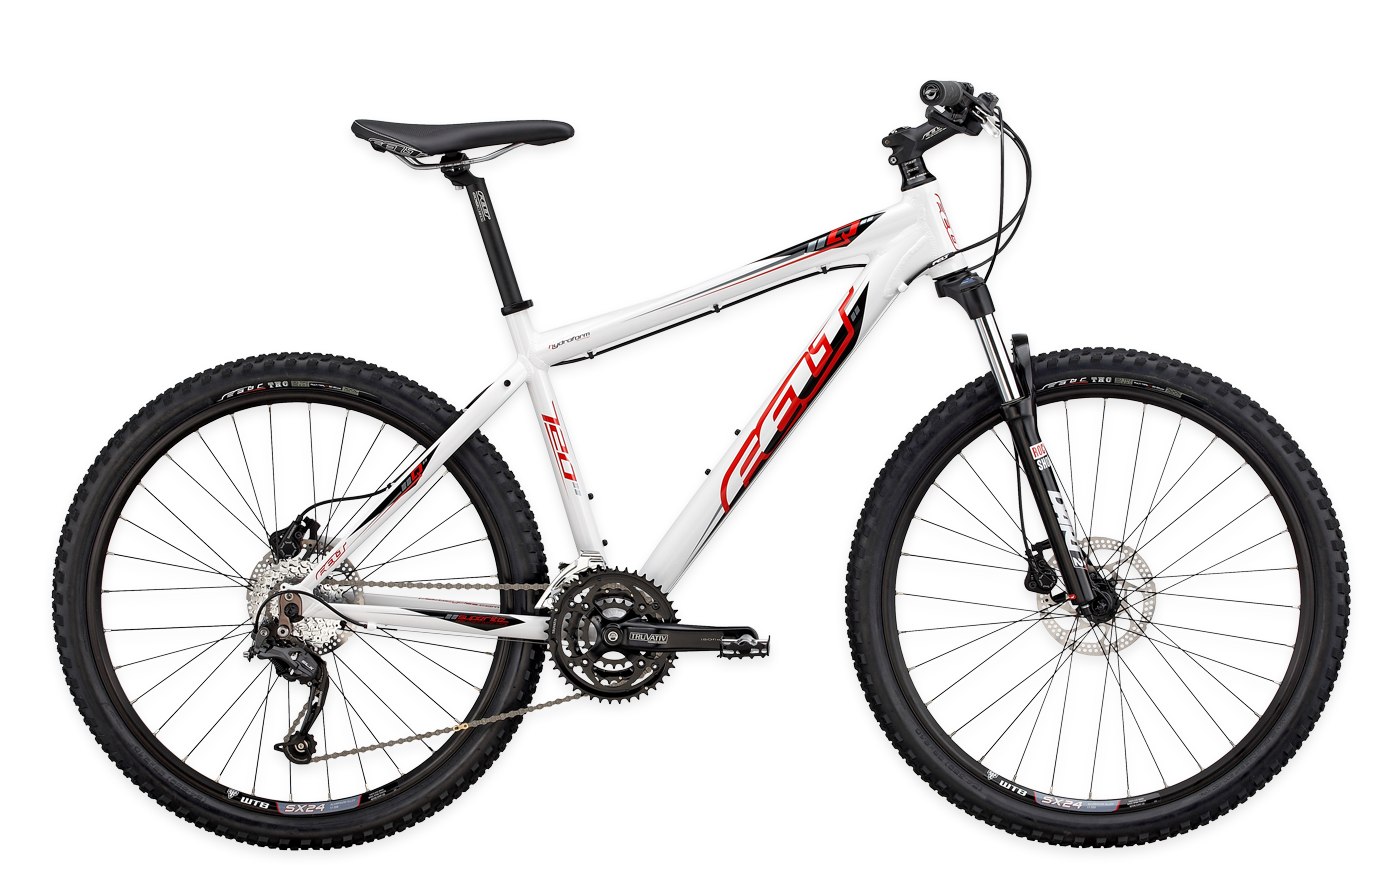 Bicycle png images free. Cycle clipart mountain biker